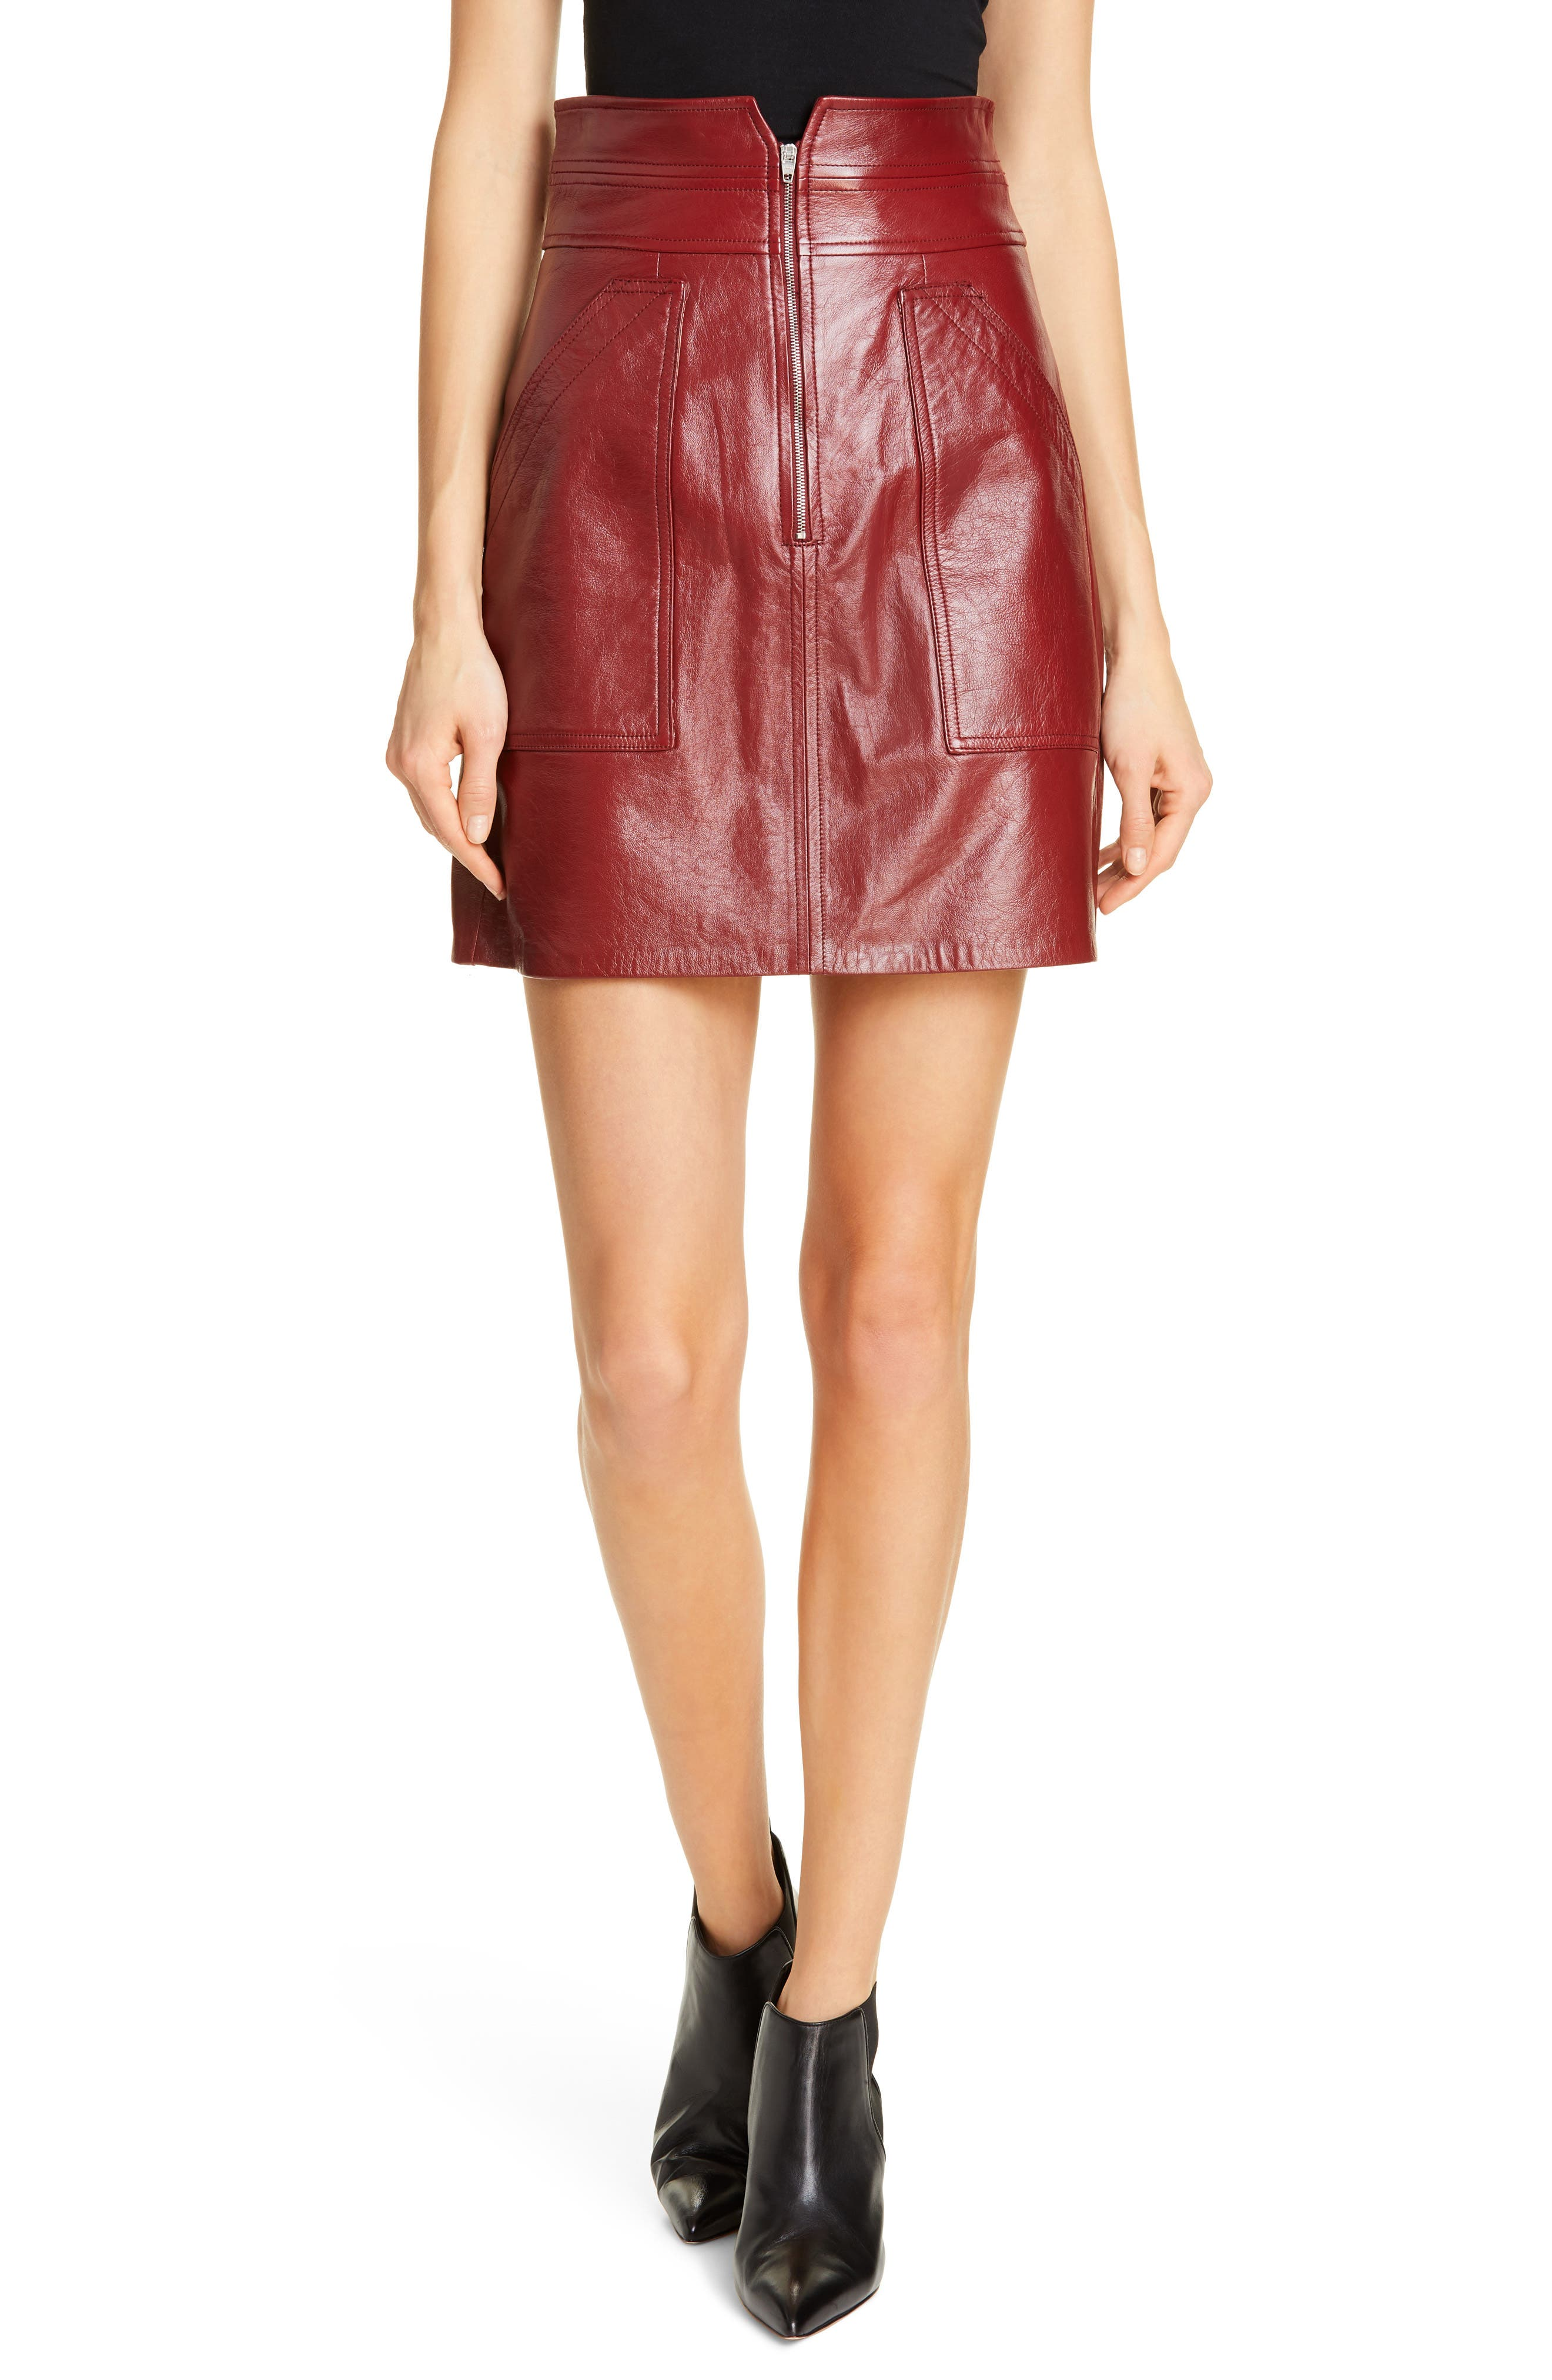 REBECCA TAYLOR Leather Skirt, Main, color, SPICE